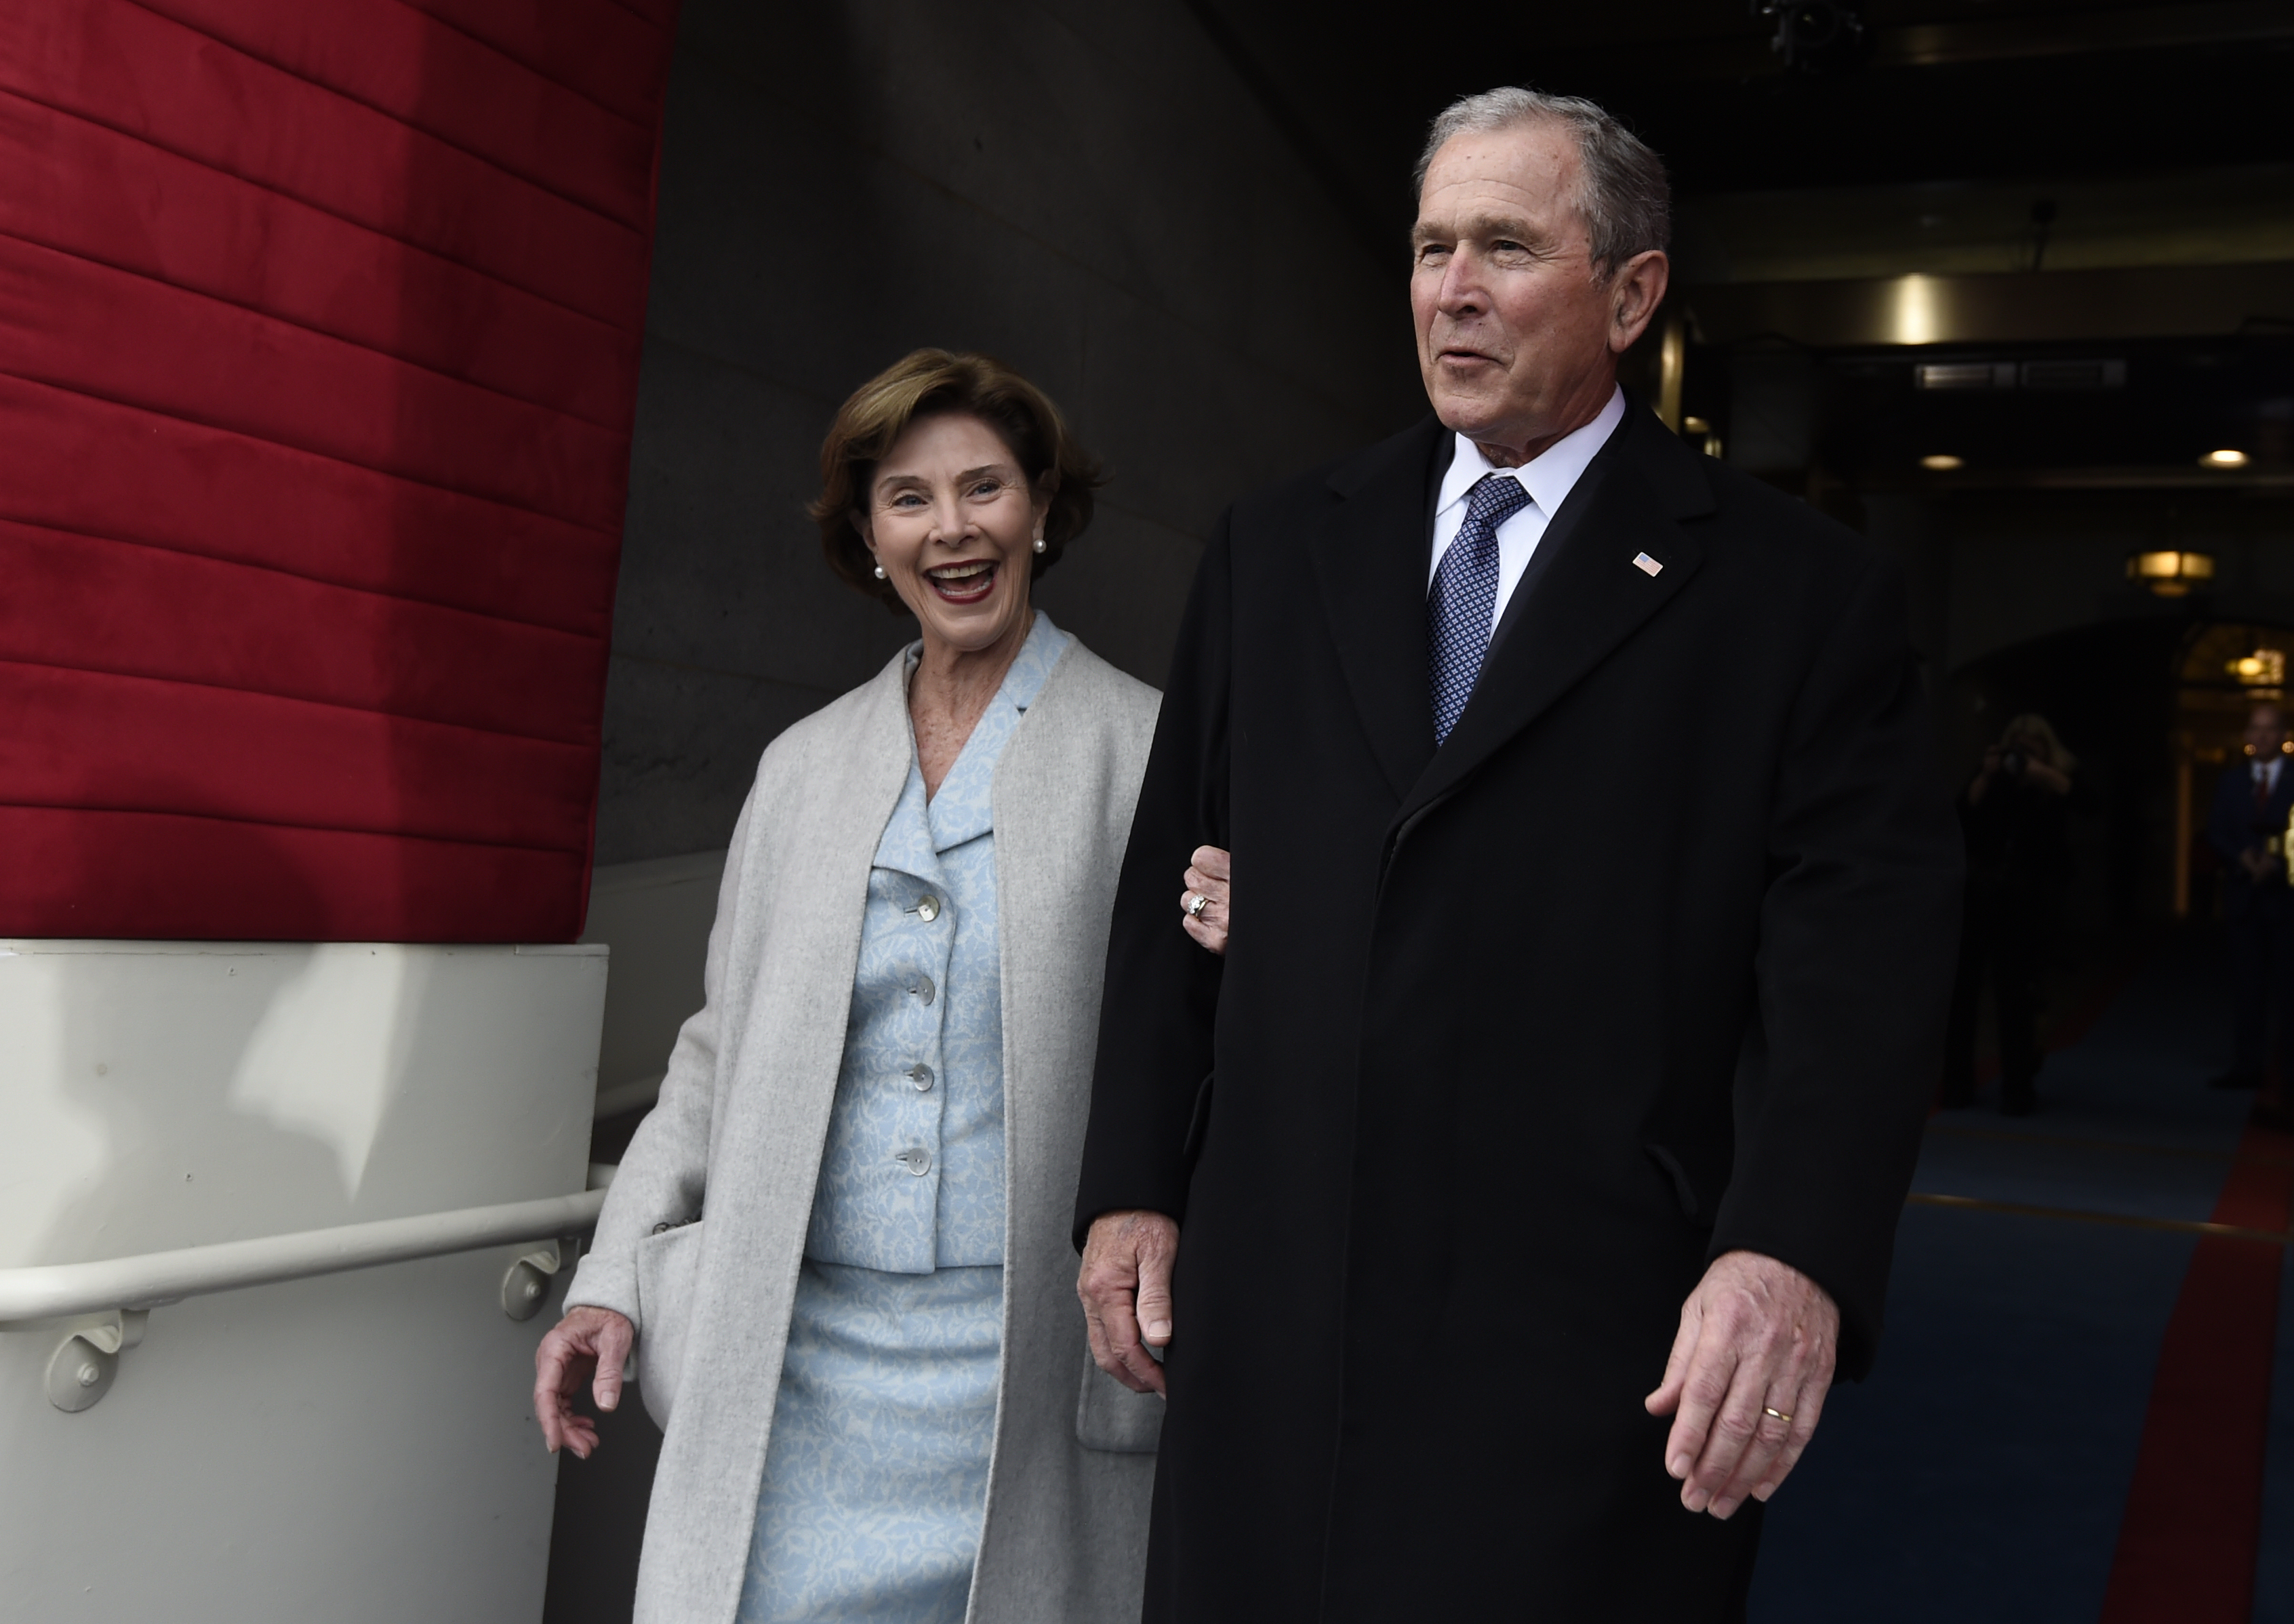 <div class='meta'><div class='origin-logo' data-origin='none'></div><span class='caption-text' data-credit='AFP PHOTO / POOL / SAUL LOEB'>Former US President George W. Bush and First Lady Laura Bush arrive for the Presidential Inauguration of Donald Trump at the US Capitol in Washington, DC, January 20, 2017.</span></div>